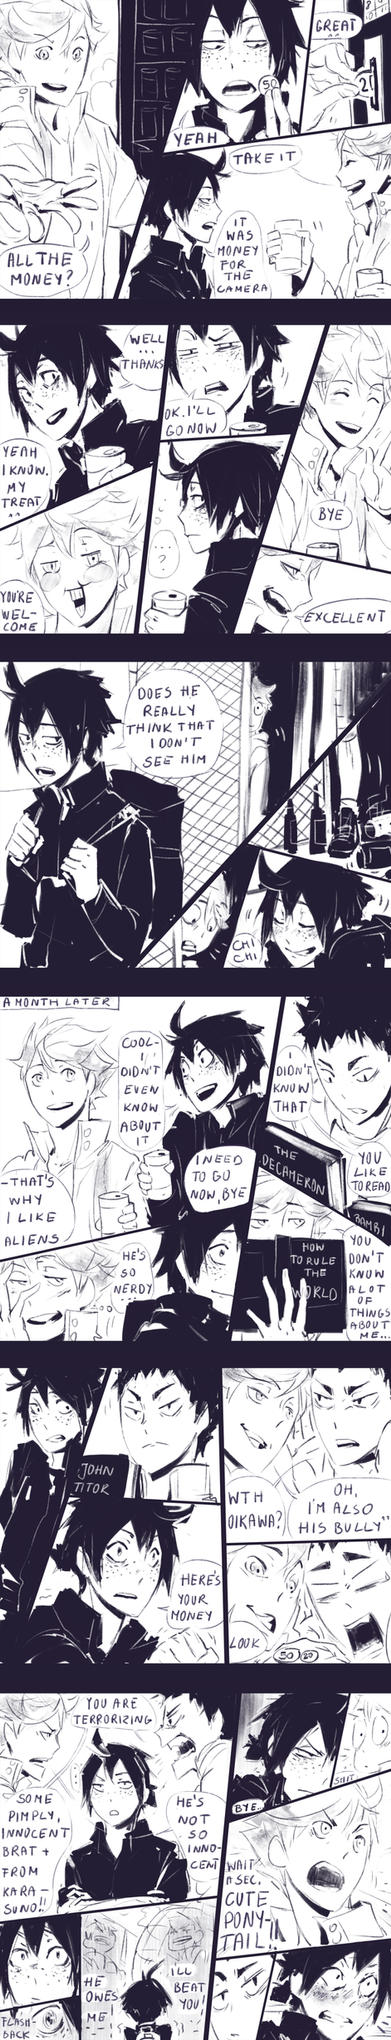 Oiyama comic part6 by Kanda3egle